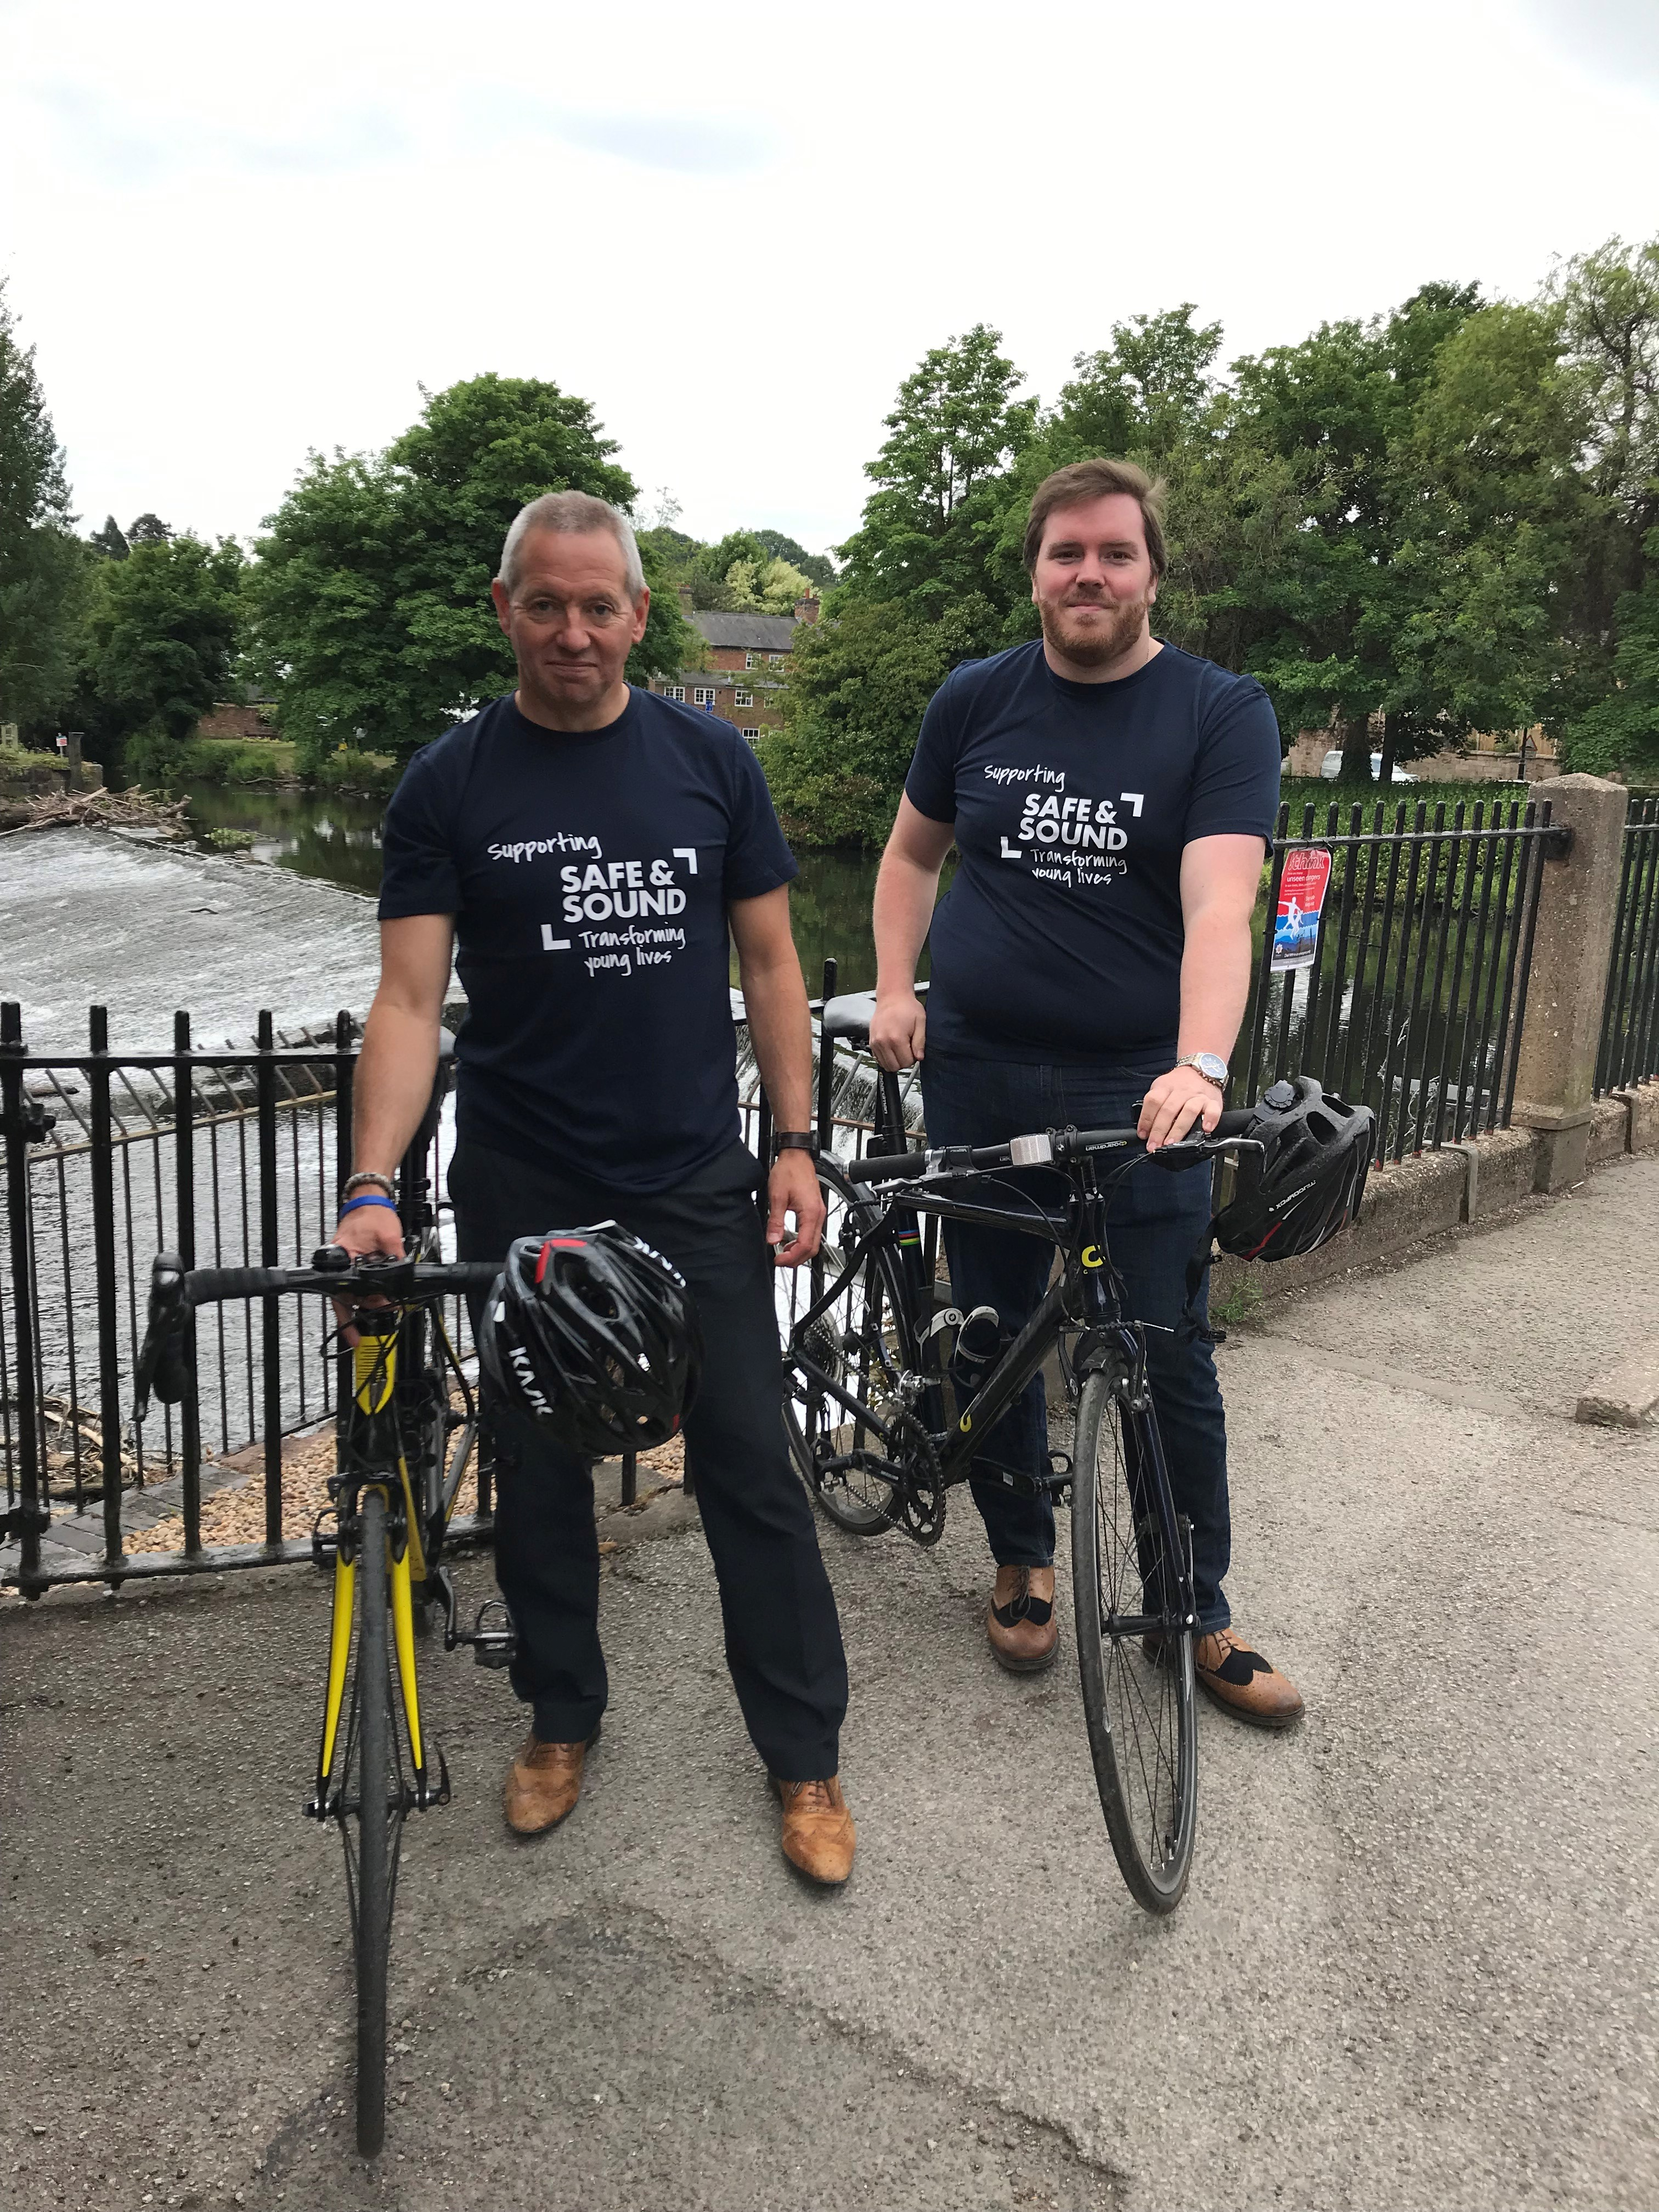 Get On Your Bike And Support Safe And Sound